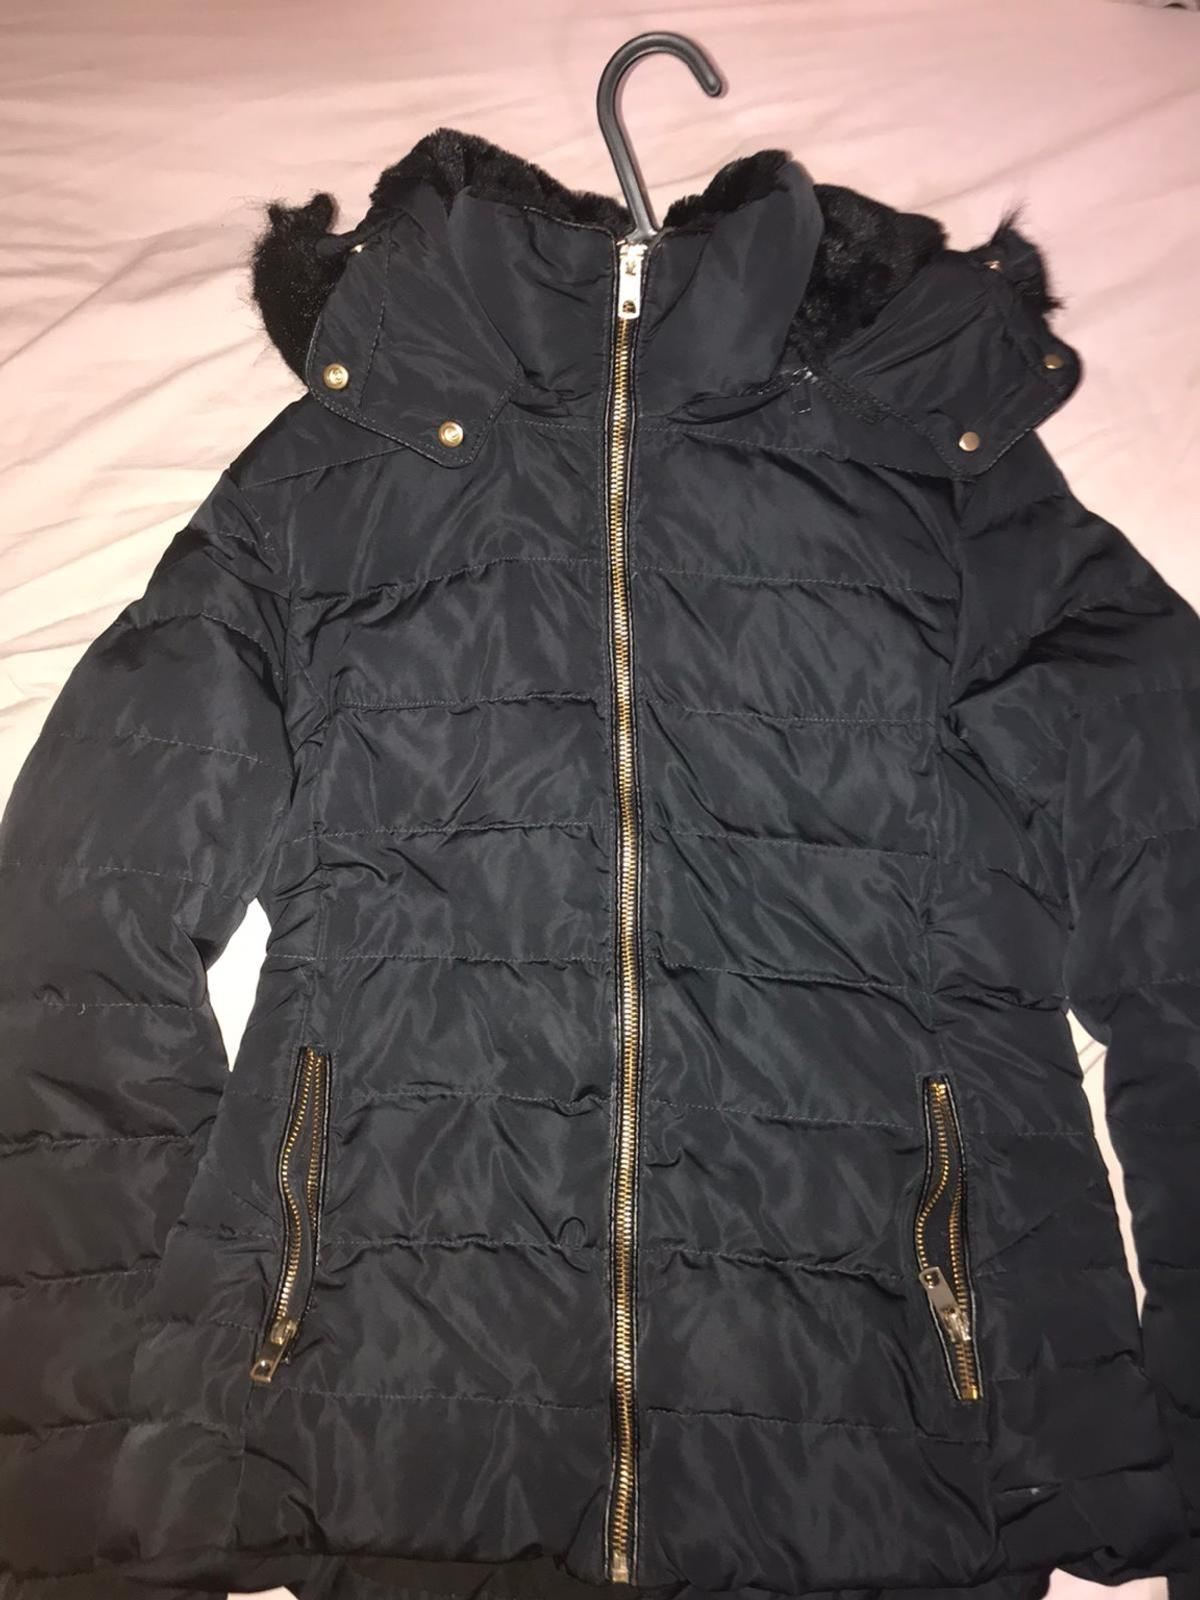 Very good condition size s